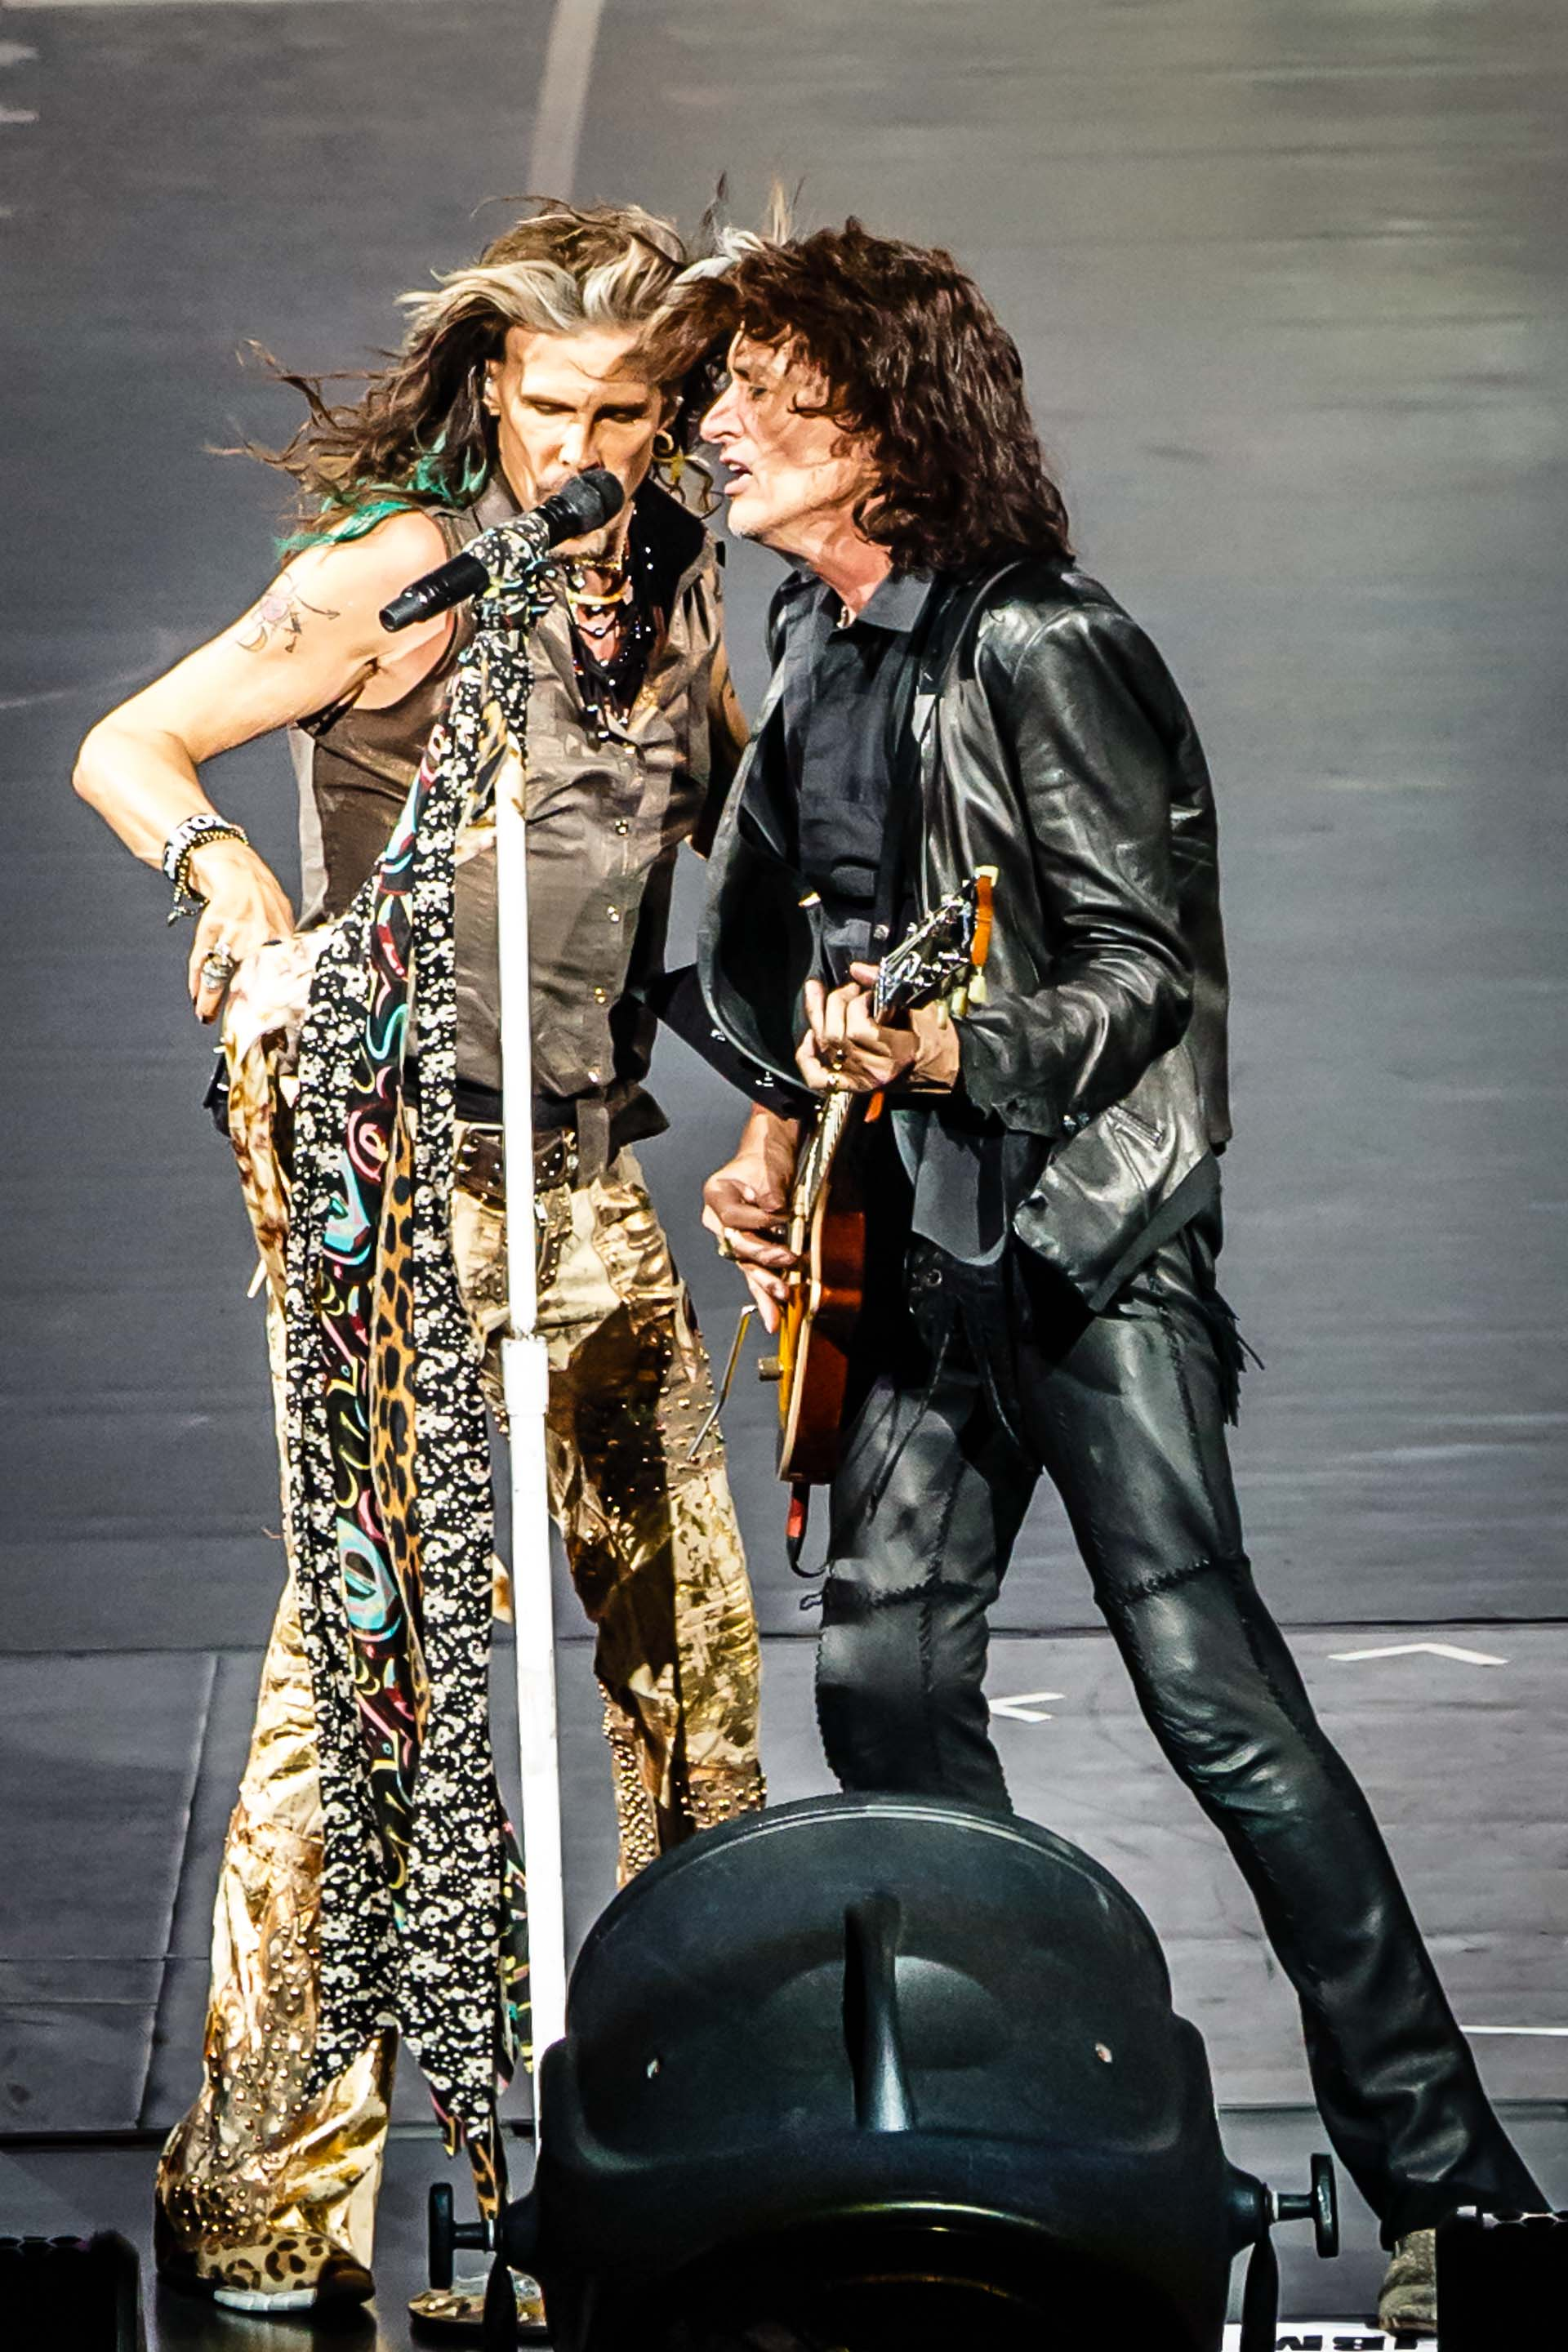 20150225210654 19074 WED SPECIAL EVENT - AEROSMITH ROCKET